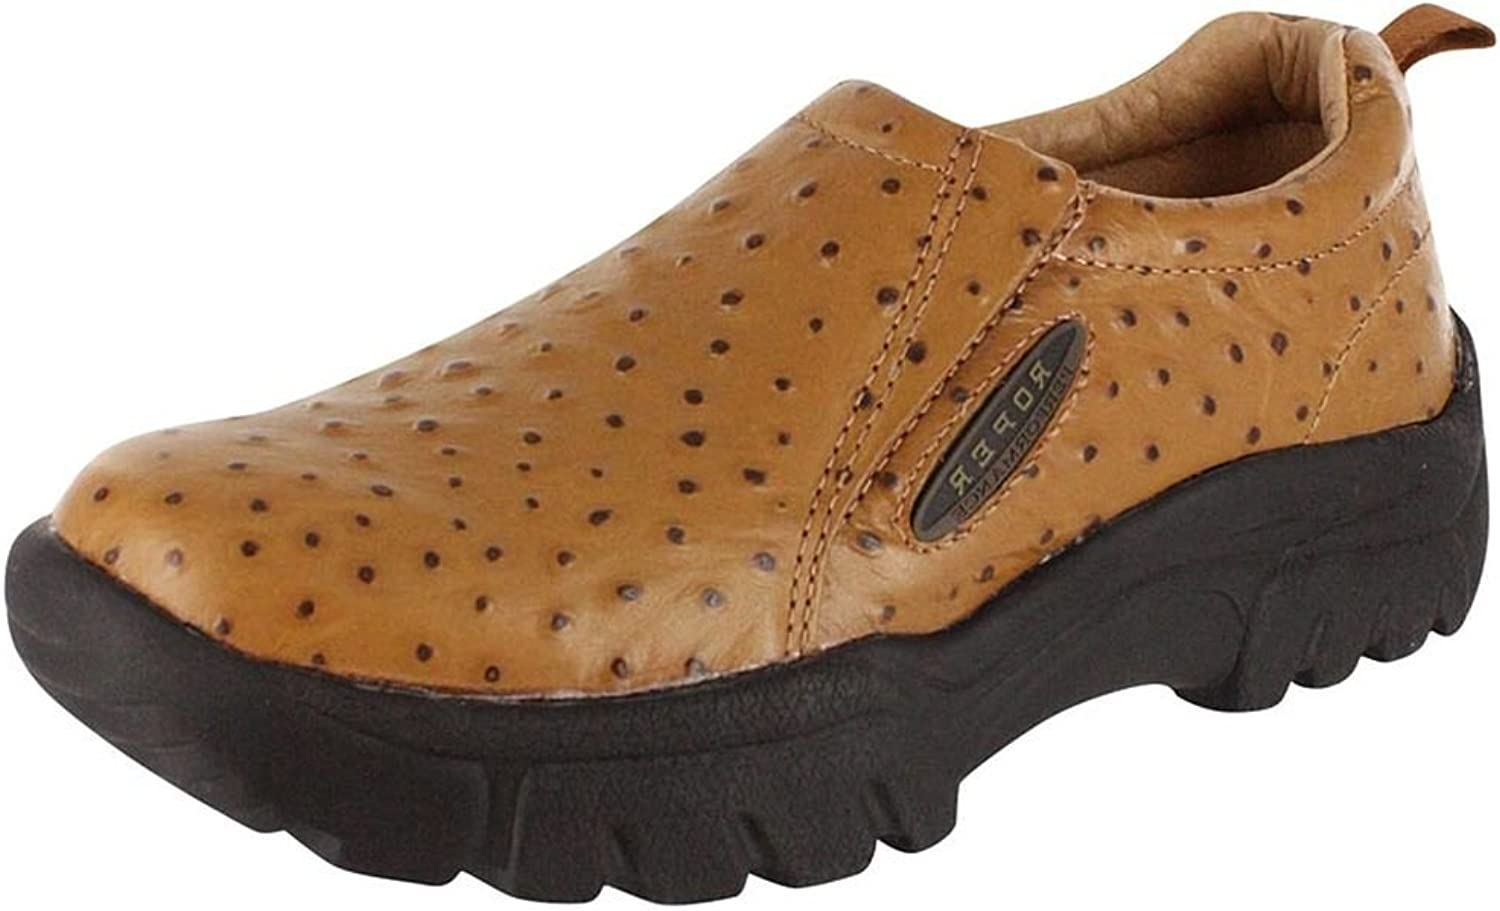 ROPER Wide Width Tan Faux Ostrich Leather Mens Slip-on (11 W) 09-020-0601-8350TA